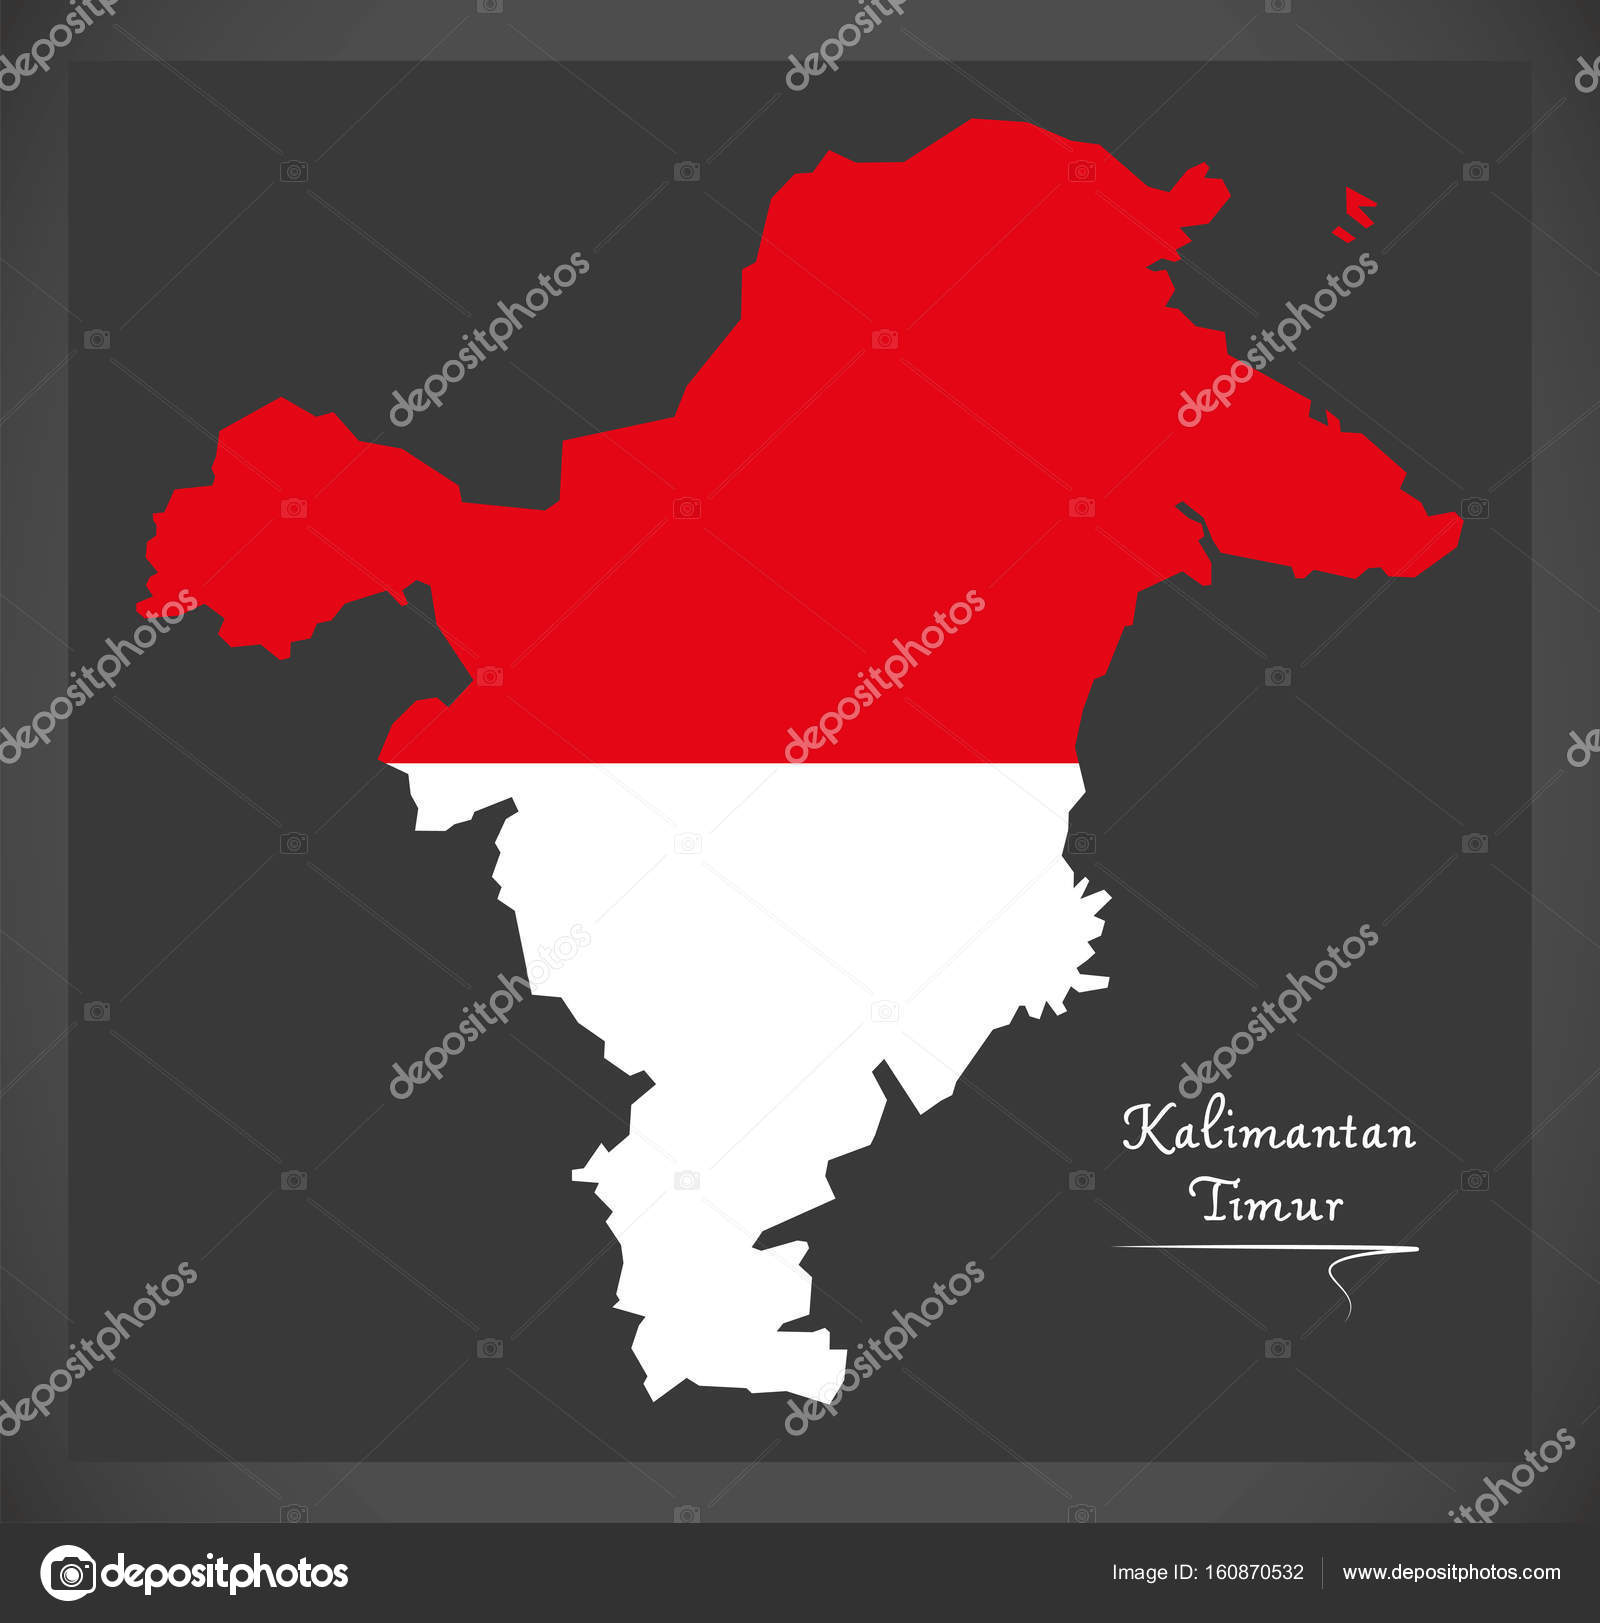 Kalimantan Timur Indonesia Map With Indonesian National Flag Ill - Ill map